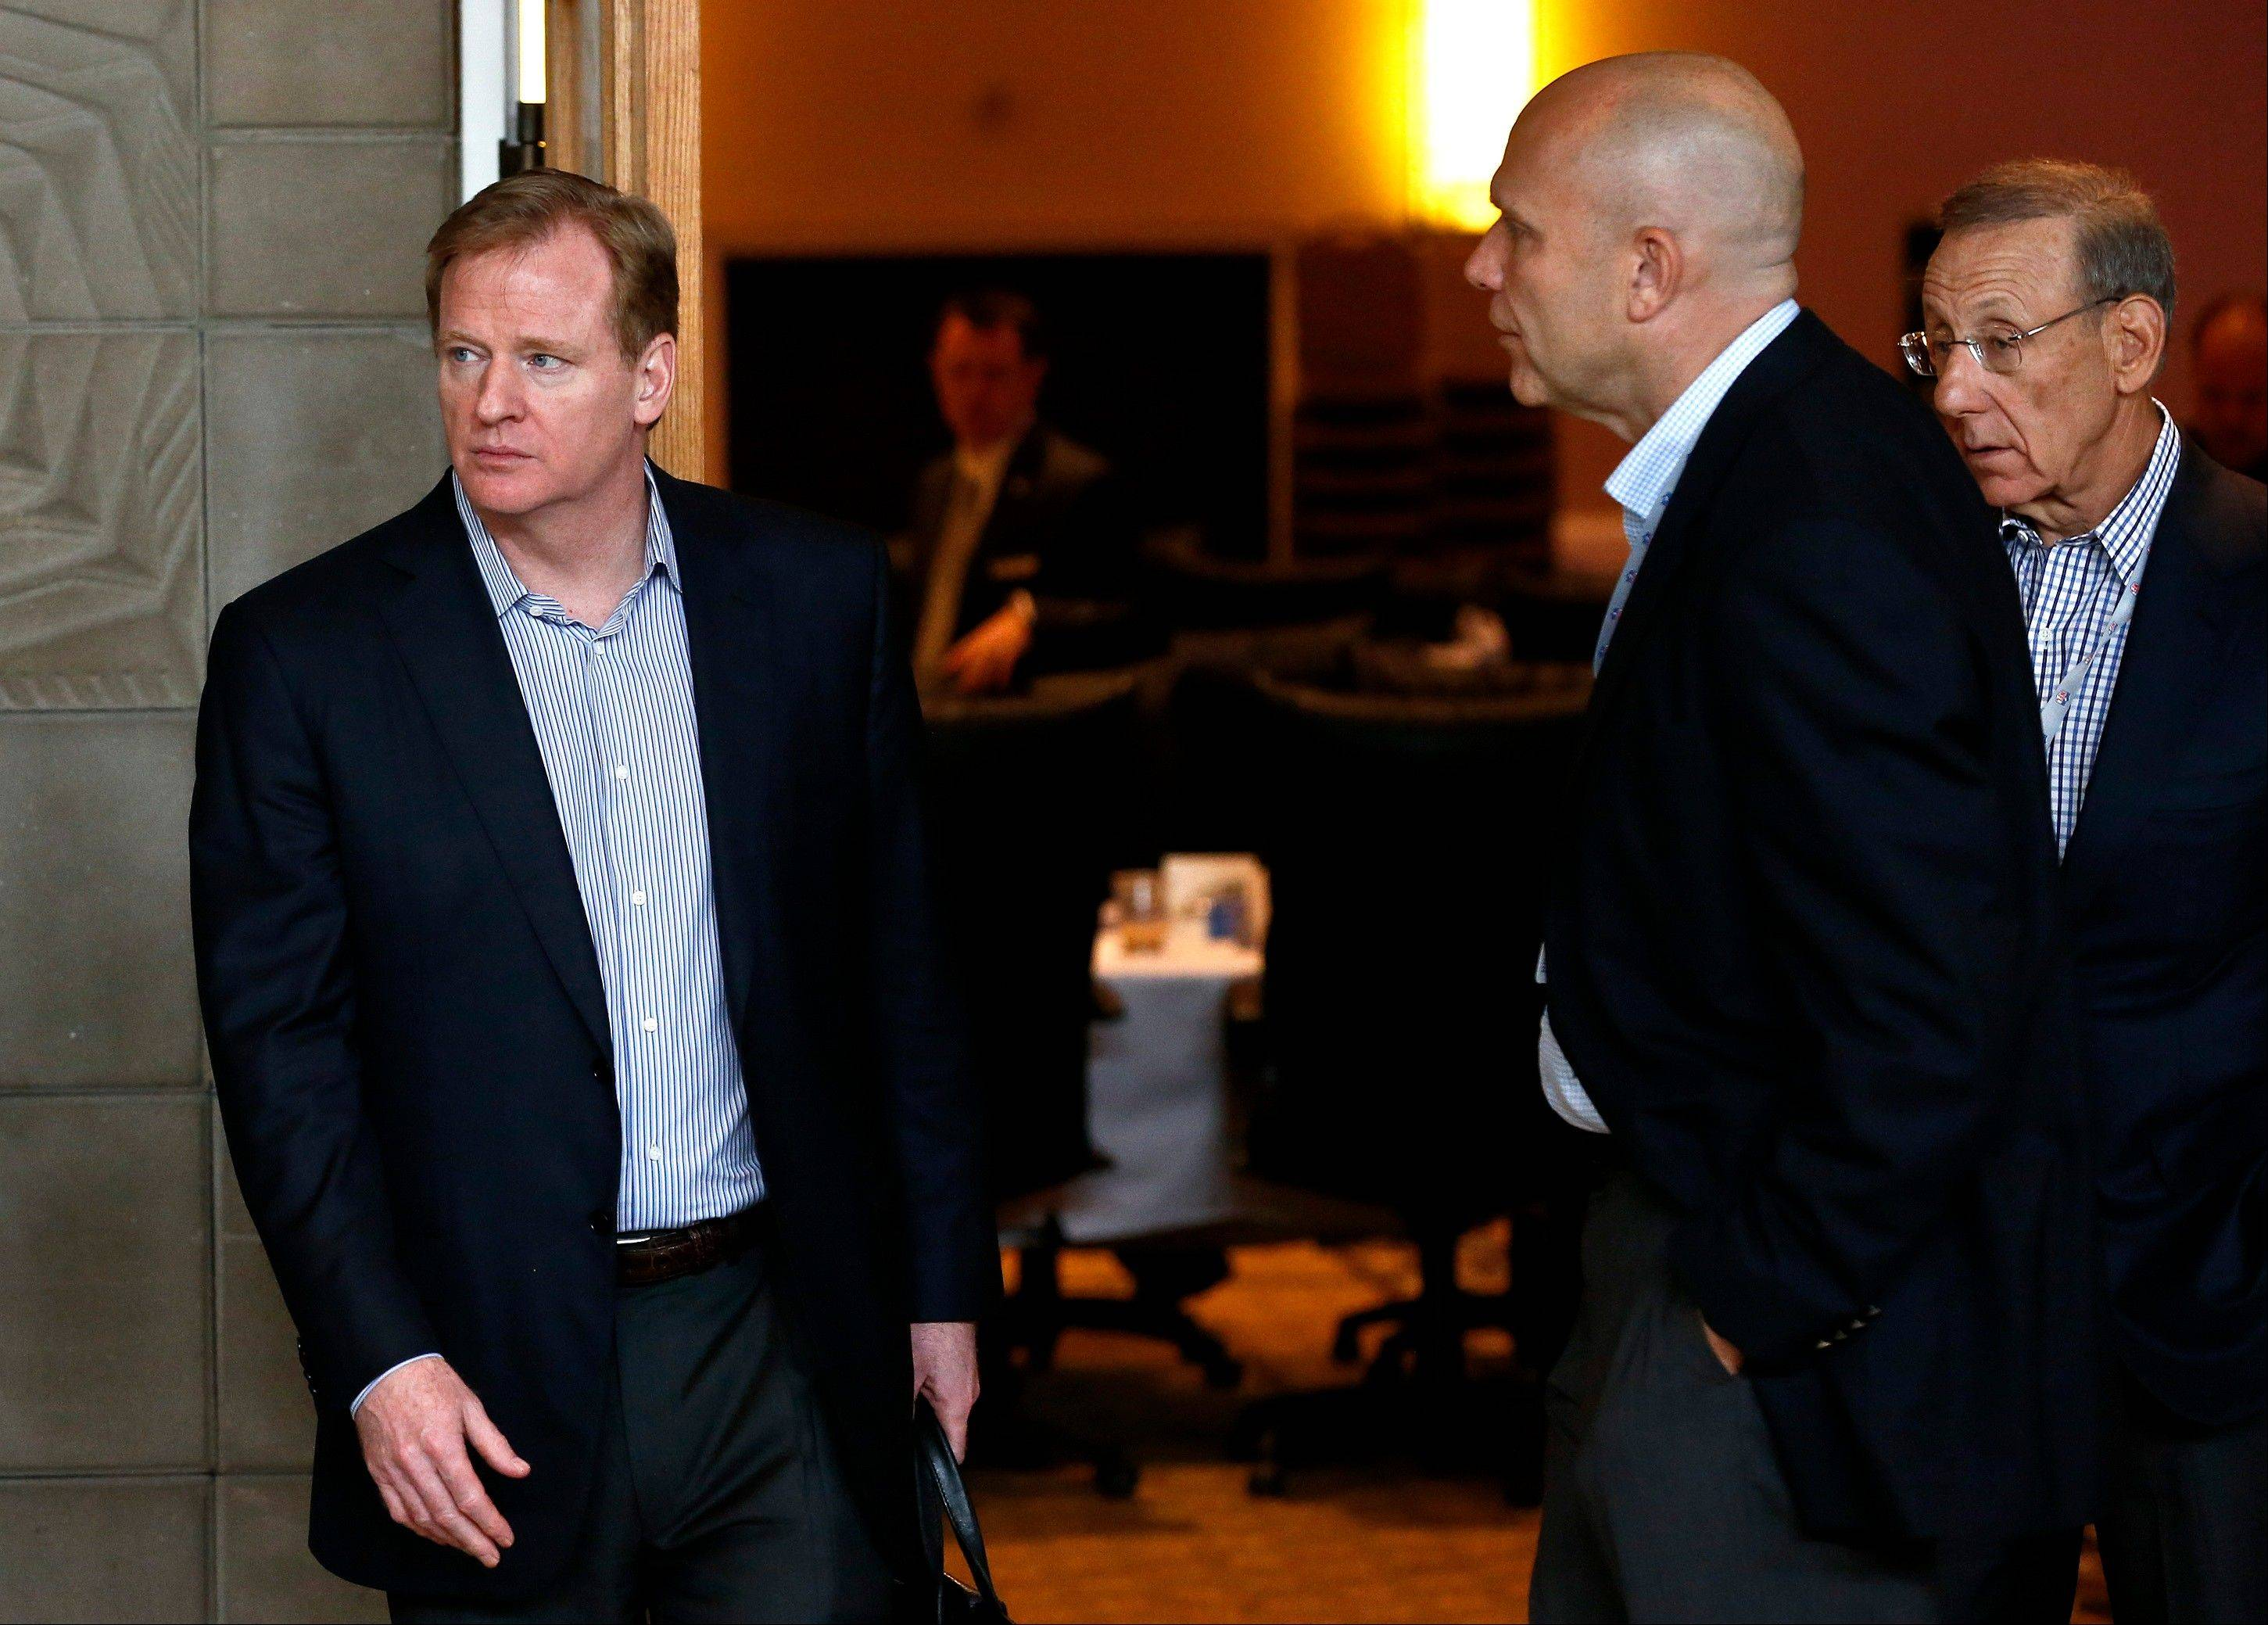 NFL Commissioner Roger Gooderll, left, walks with Miami Dolphins owner Stephen Ross, far right, and Dolphins CEO Mike Dee during the annual NFL footbal meetings at the Arizona Biltmore, Tuesday, March 19, 2013, in Phoenix. (AP Photo/Ross D. Franklin)